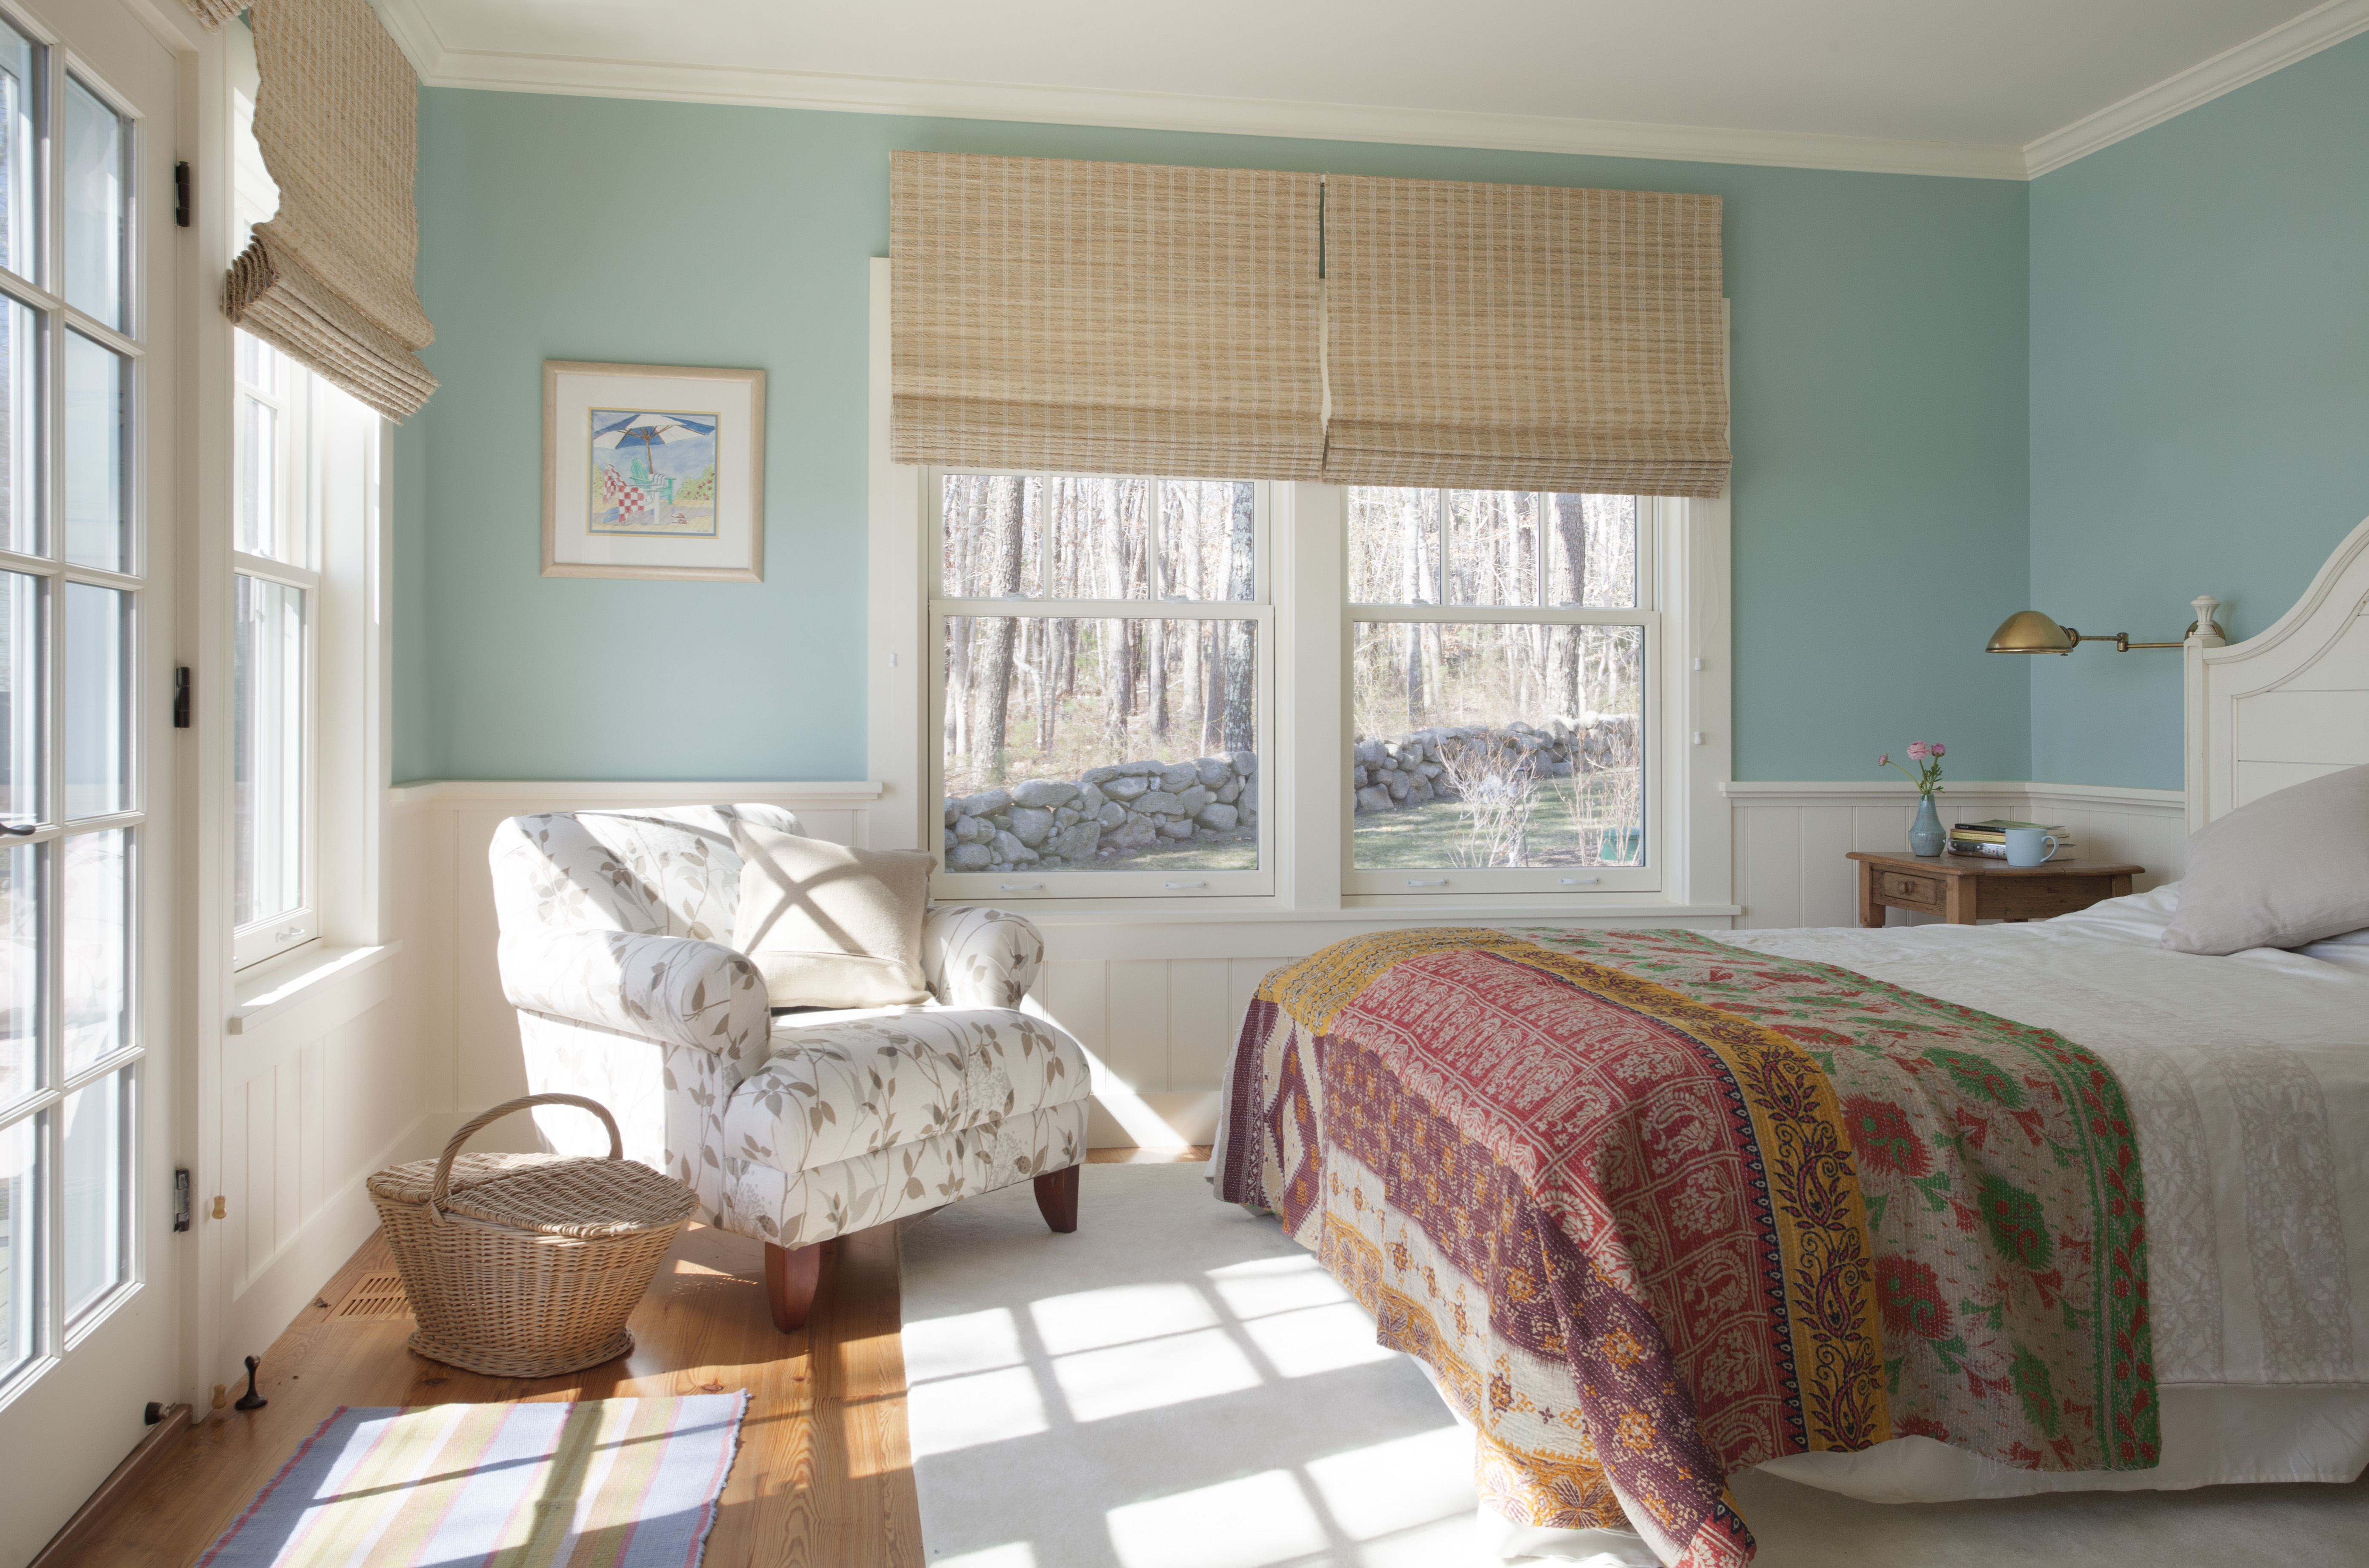 Color defines the mood in this Martha's Vineyard bedroom designed by Elizabeth Swartz Interiors